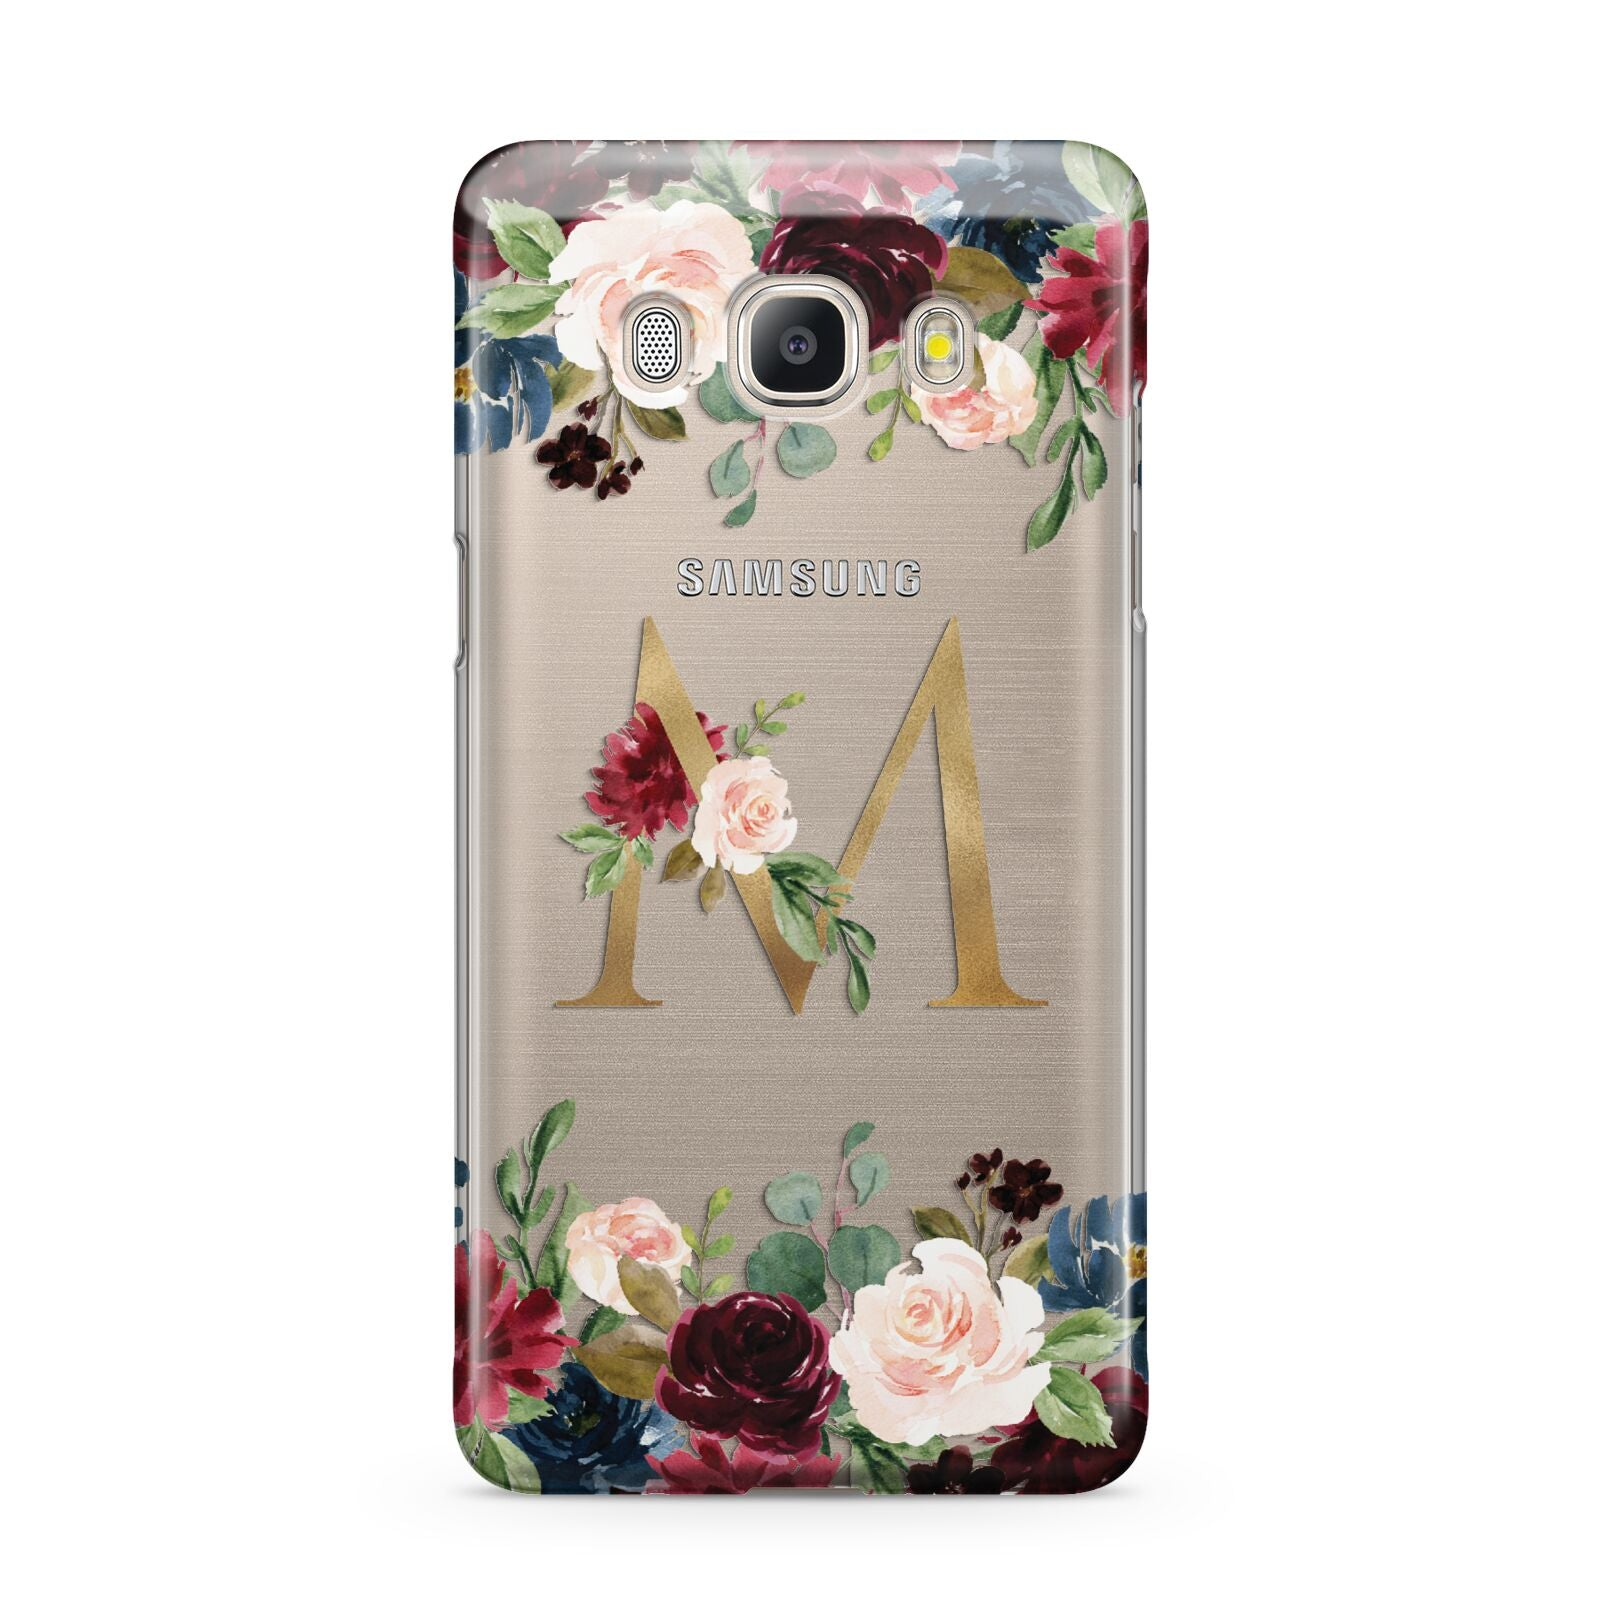 Personalised Clear Monogram Floral Samsung Galaxy J5 2016 Case